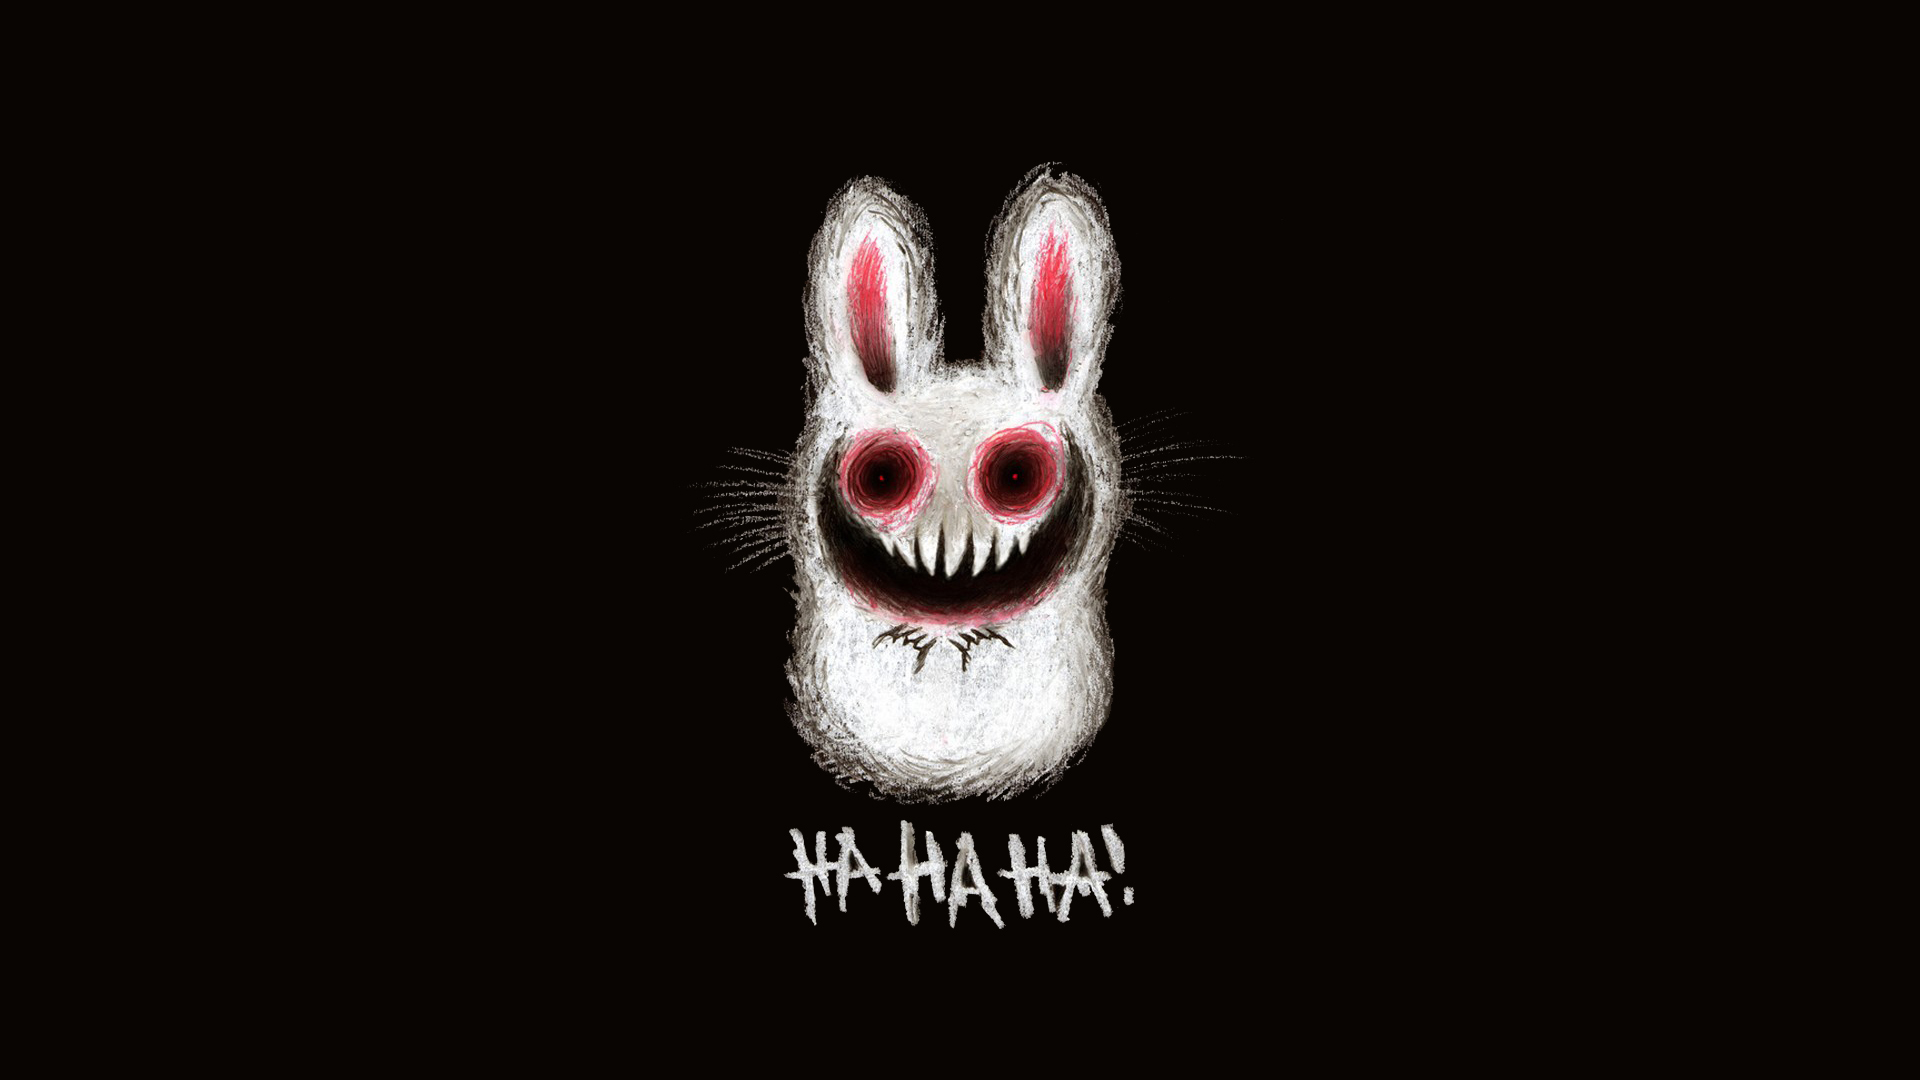 Bunnies horror creepy minimalistic HD Wallpaper